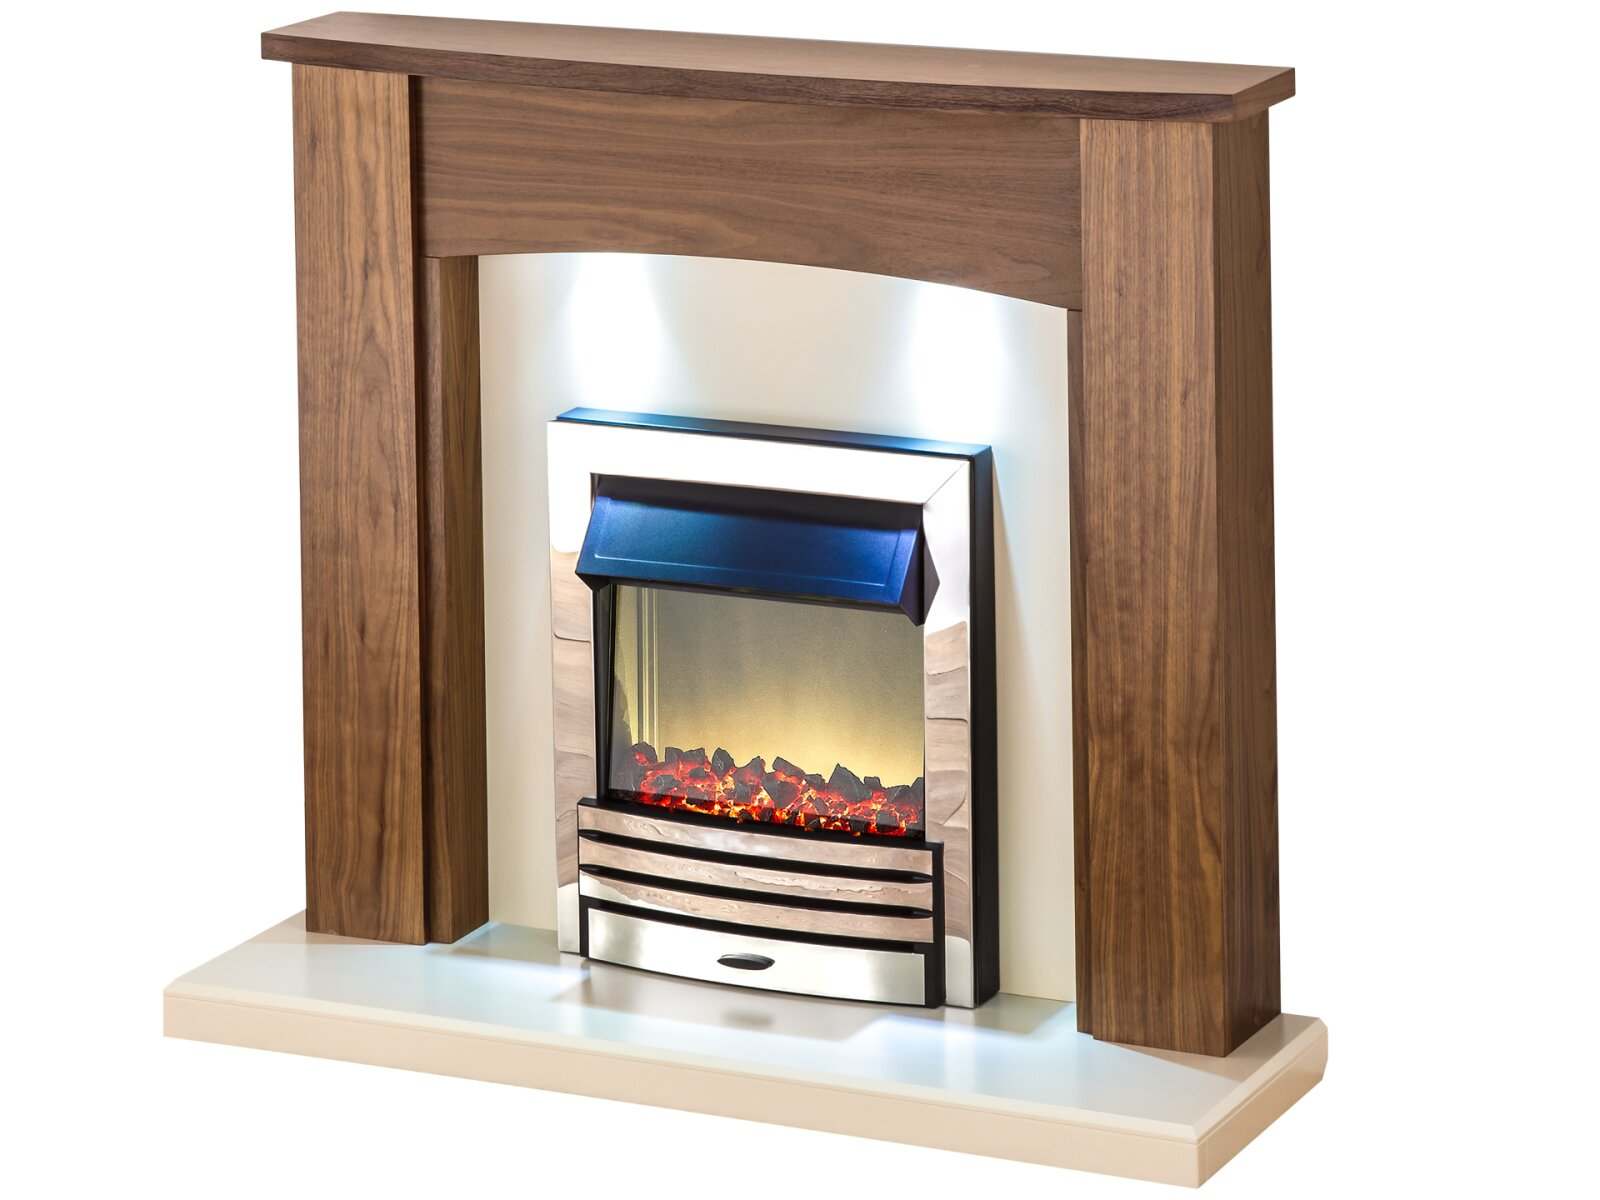 adam stanford walnut fireplace suite with chrome electric fire with downlights 48 inch. Black Bedroom Furniture Sets. Home Design Ideas